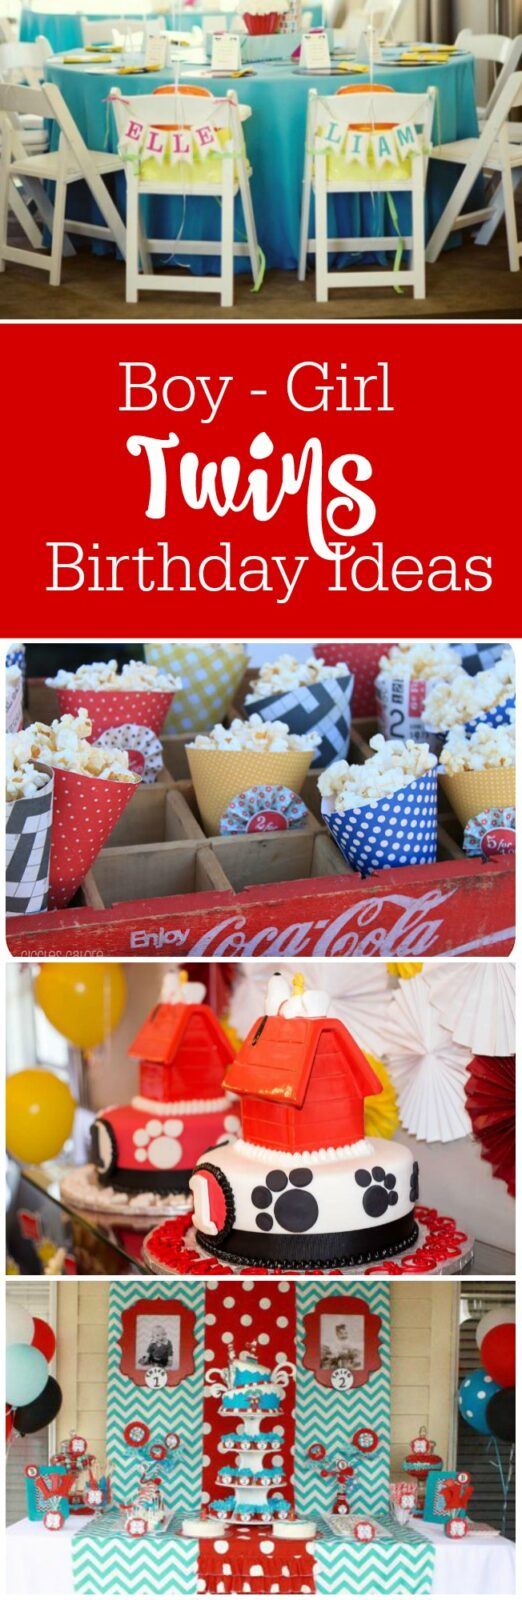 Boy girl twins birthday party ideas by The Party Teacher